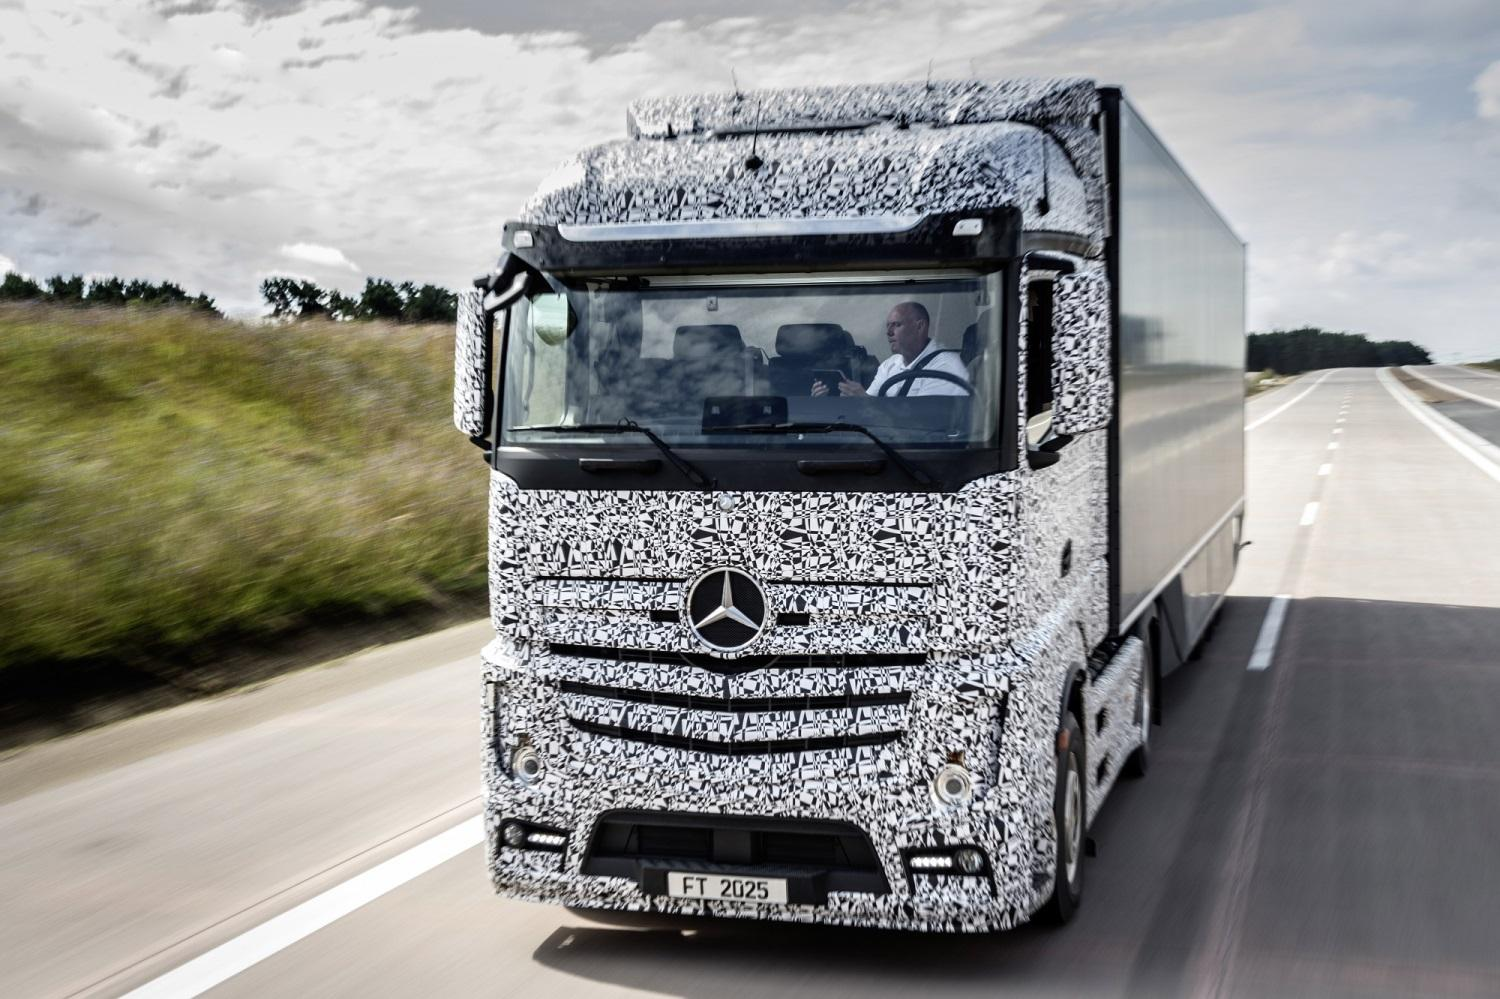 Does the Mercedes Self-Driving Truck Scare The Life Out Of You?